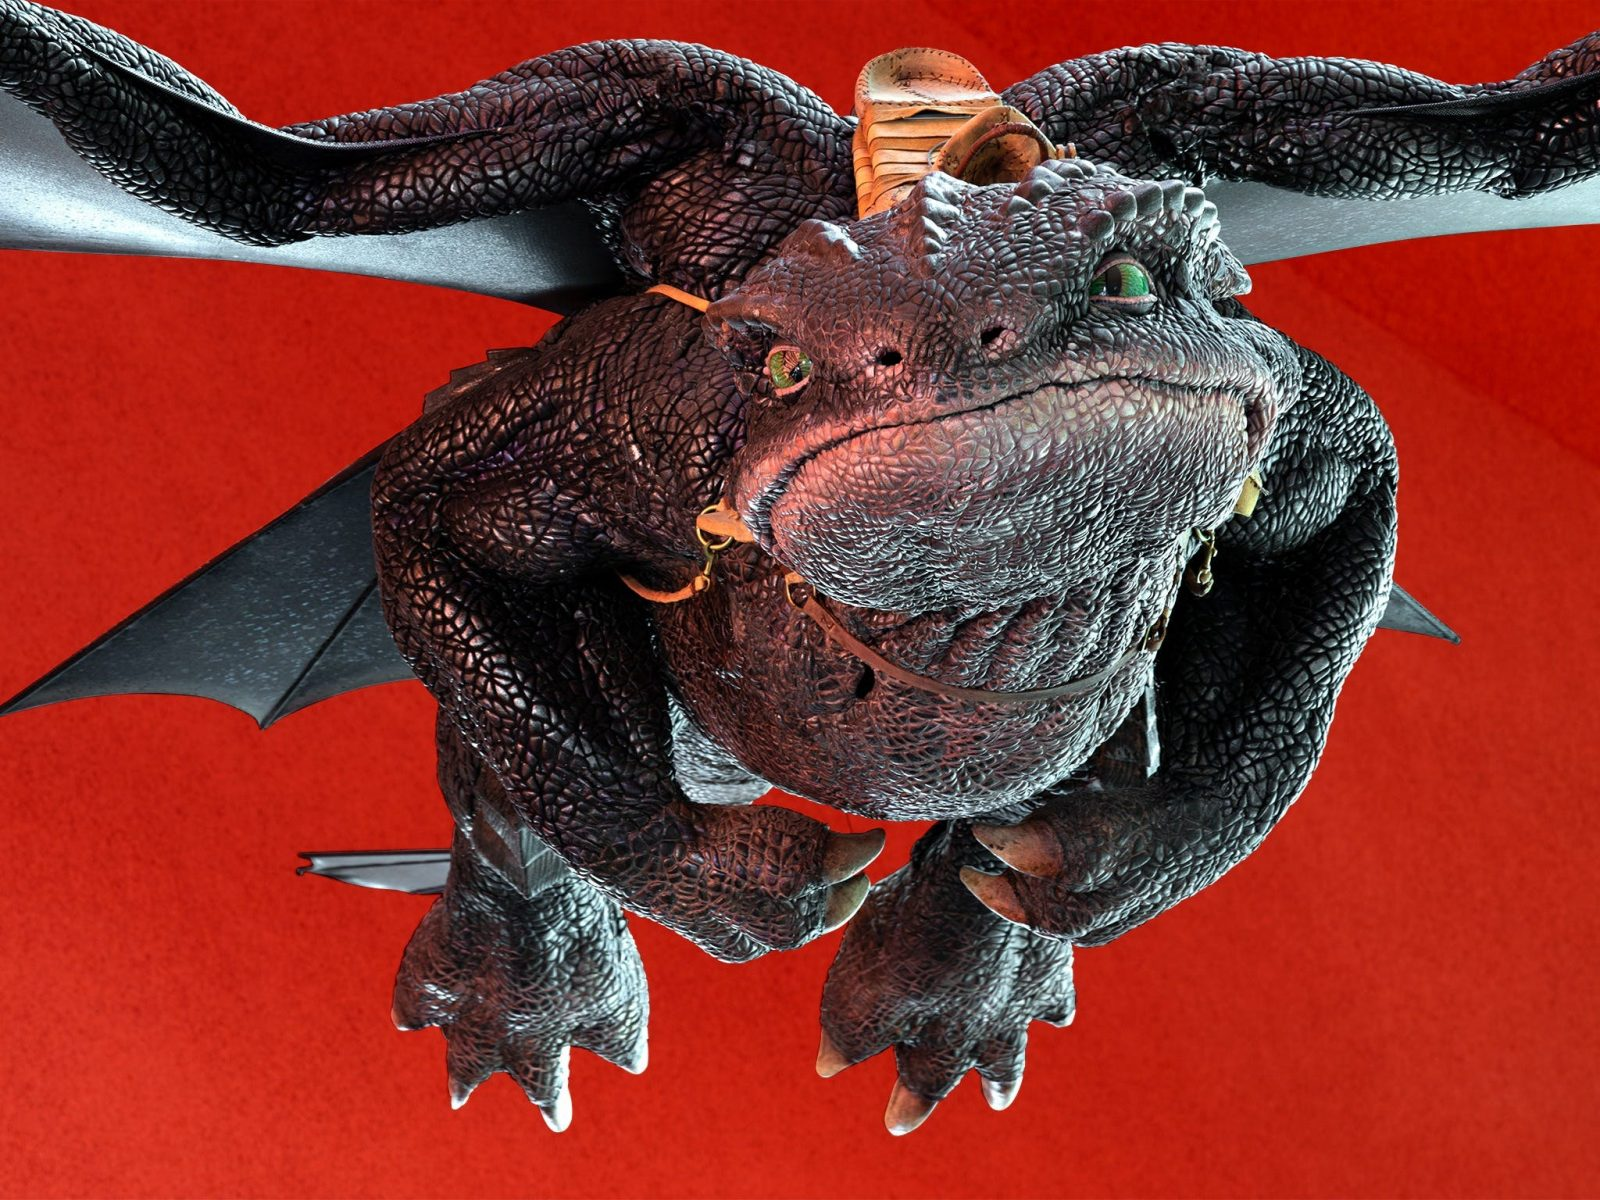 Large-scale, flying Toothless puppet from How to Train Your Dragon